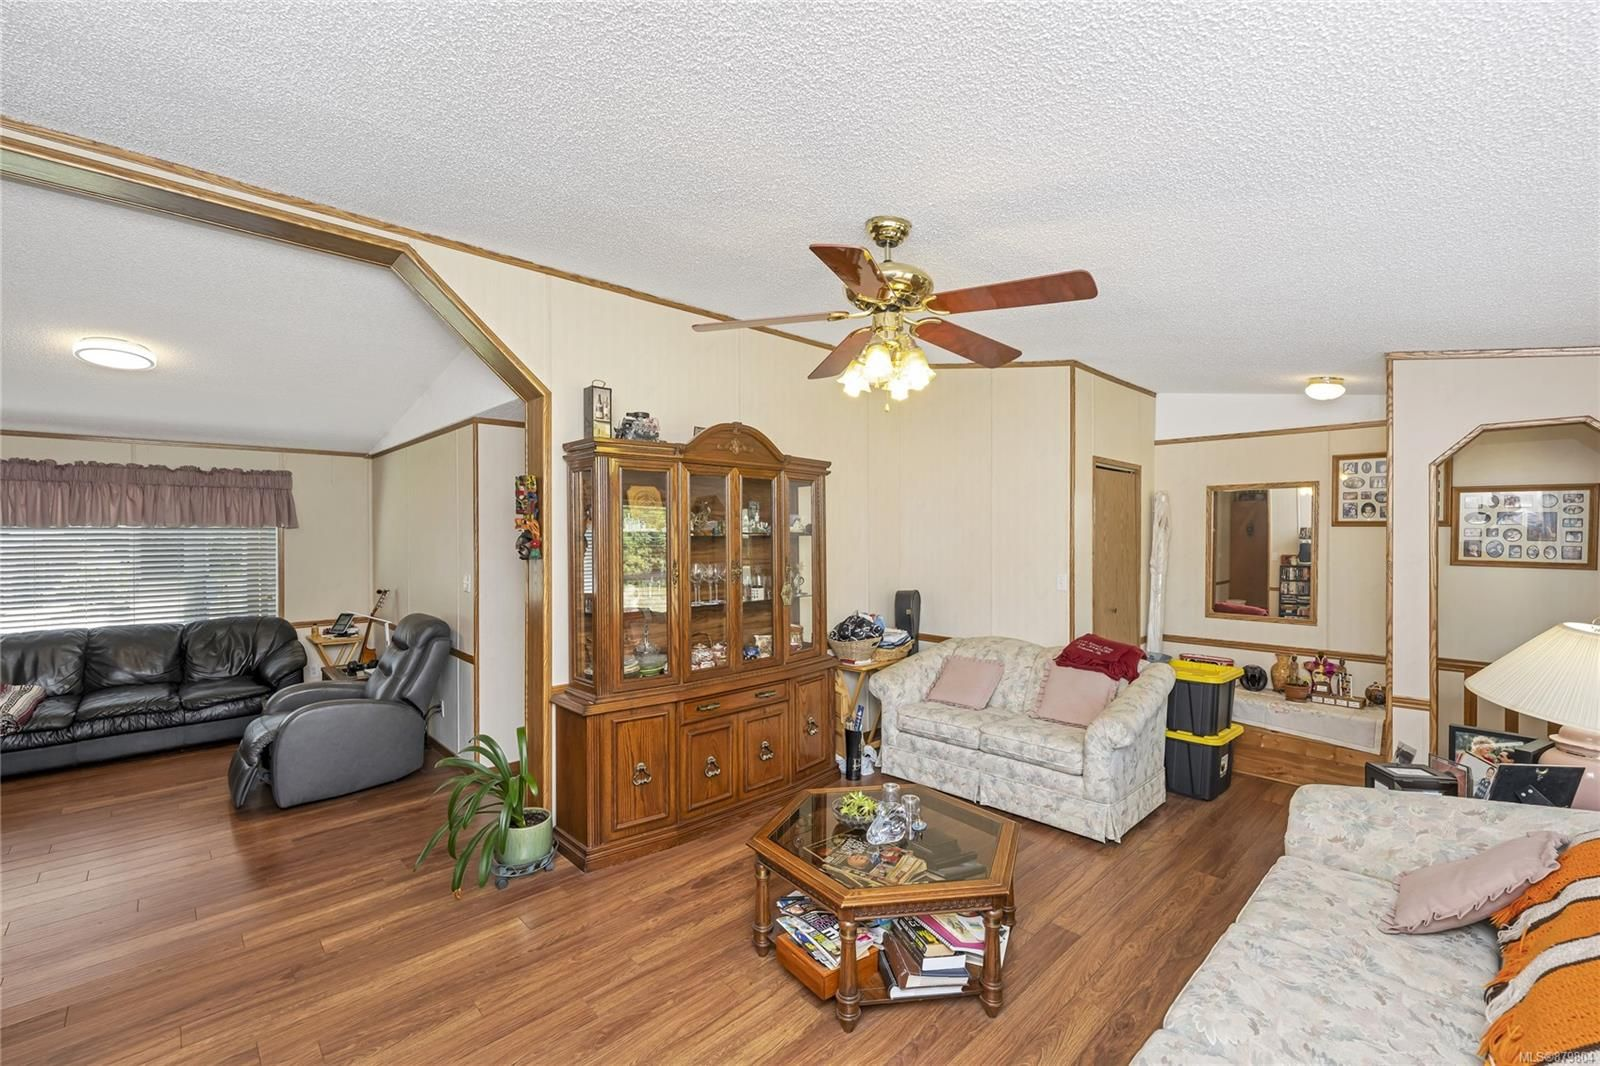 Photo 28: Photos: 3596 Riverside Rd in : ML Cobble Hill Manufactured Home for sale (Malahat & Area)  : MLS®# 879804